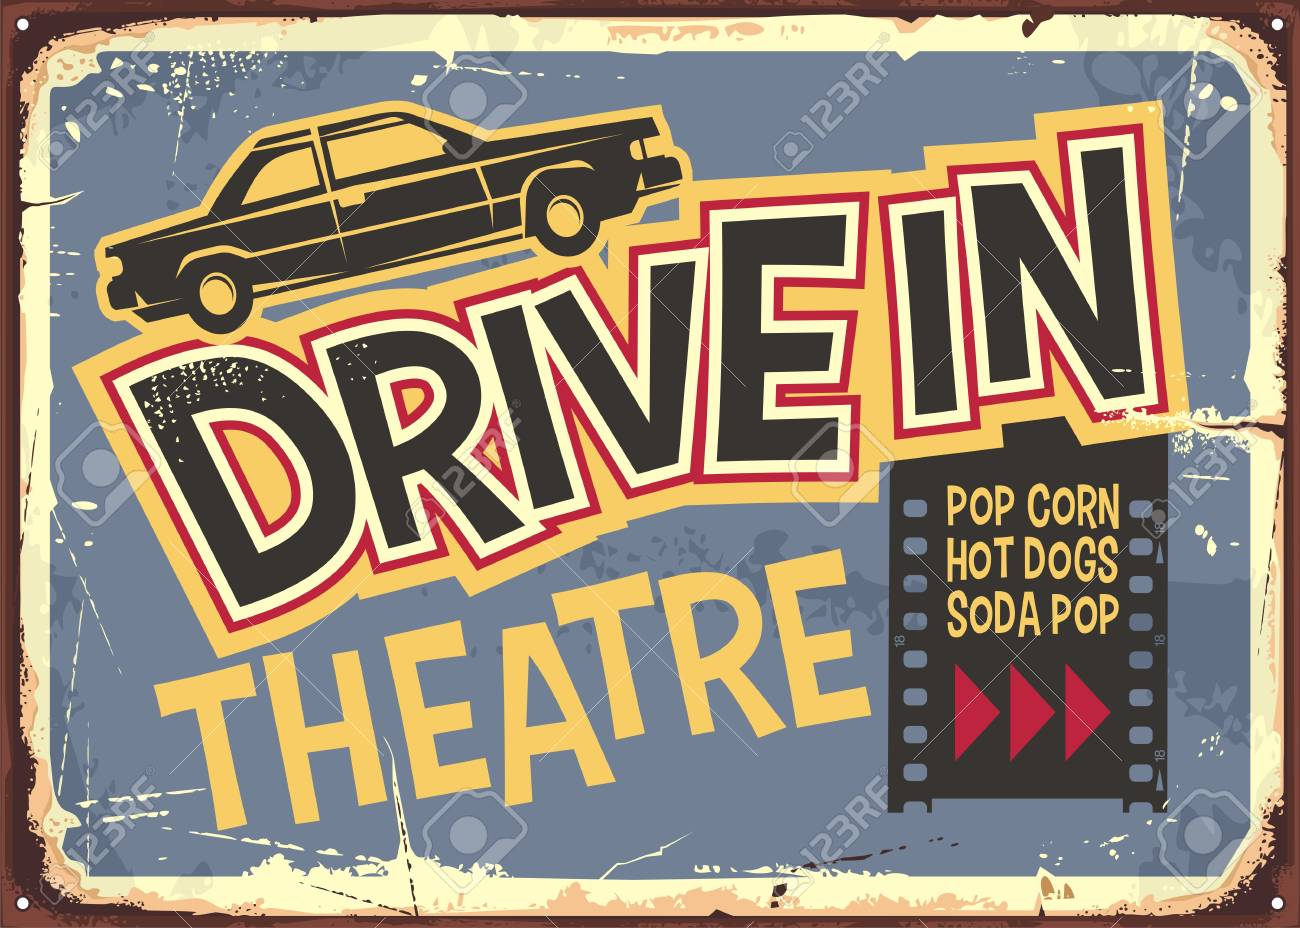 Drive In Theater Vintage Sign Design Open Air Cinema Retro Poster Royalty Free Cliparts Vectors And Stock Illustration Image 122714503